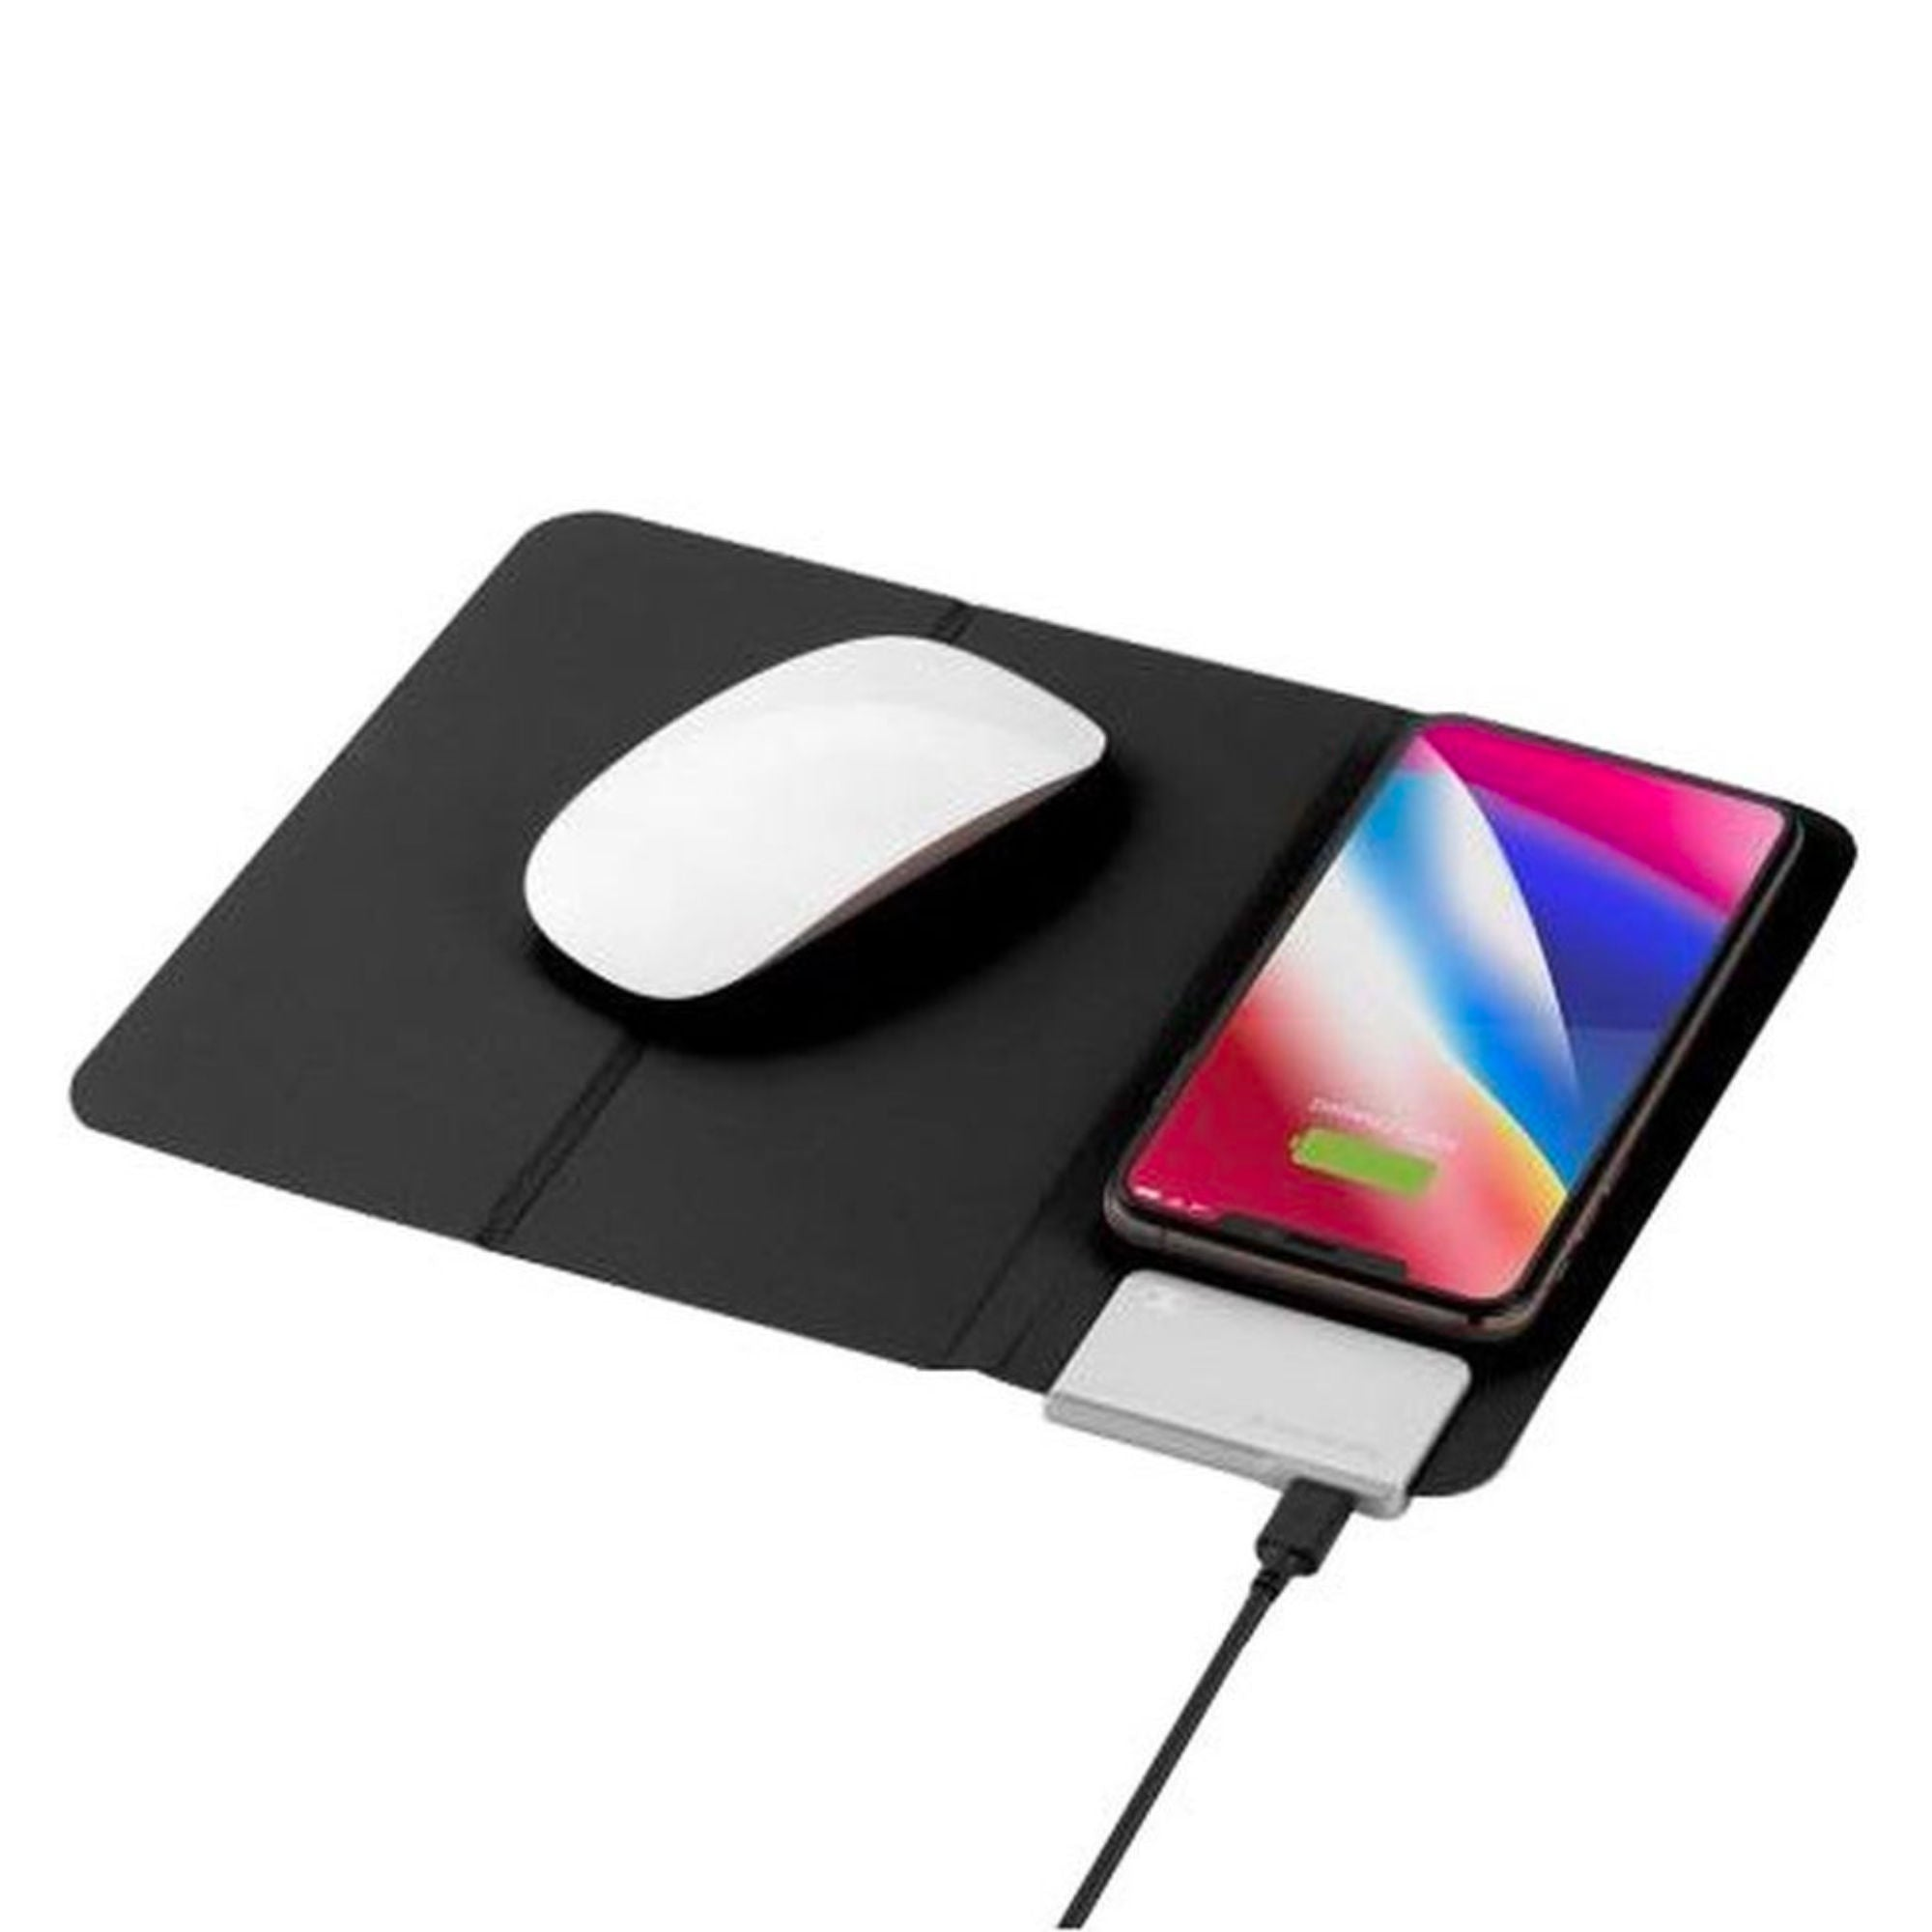 Q. Mouse Pad with built-in fast wireless charger, black